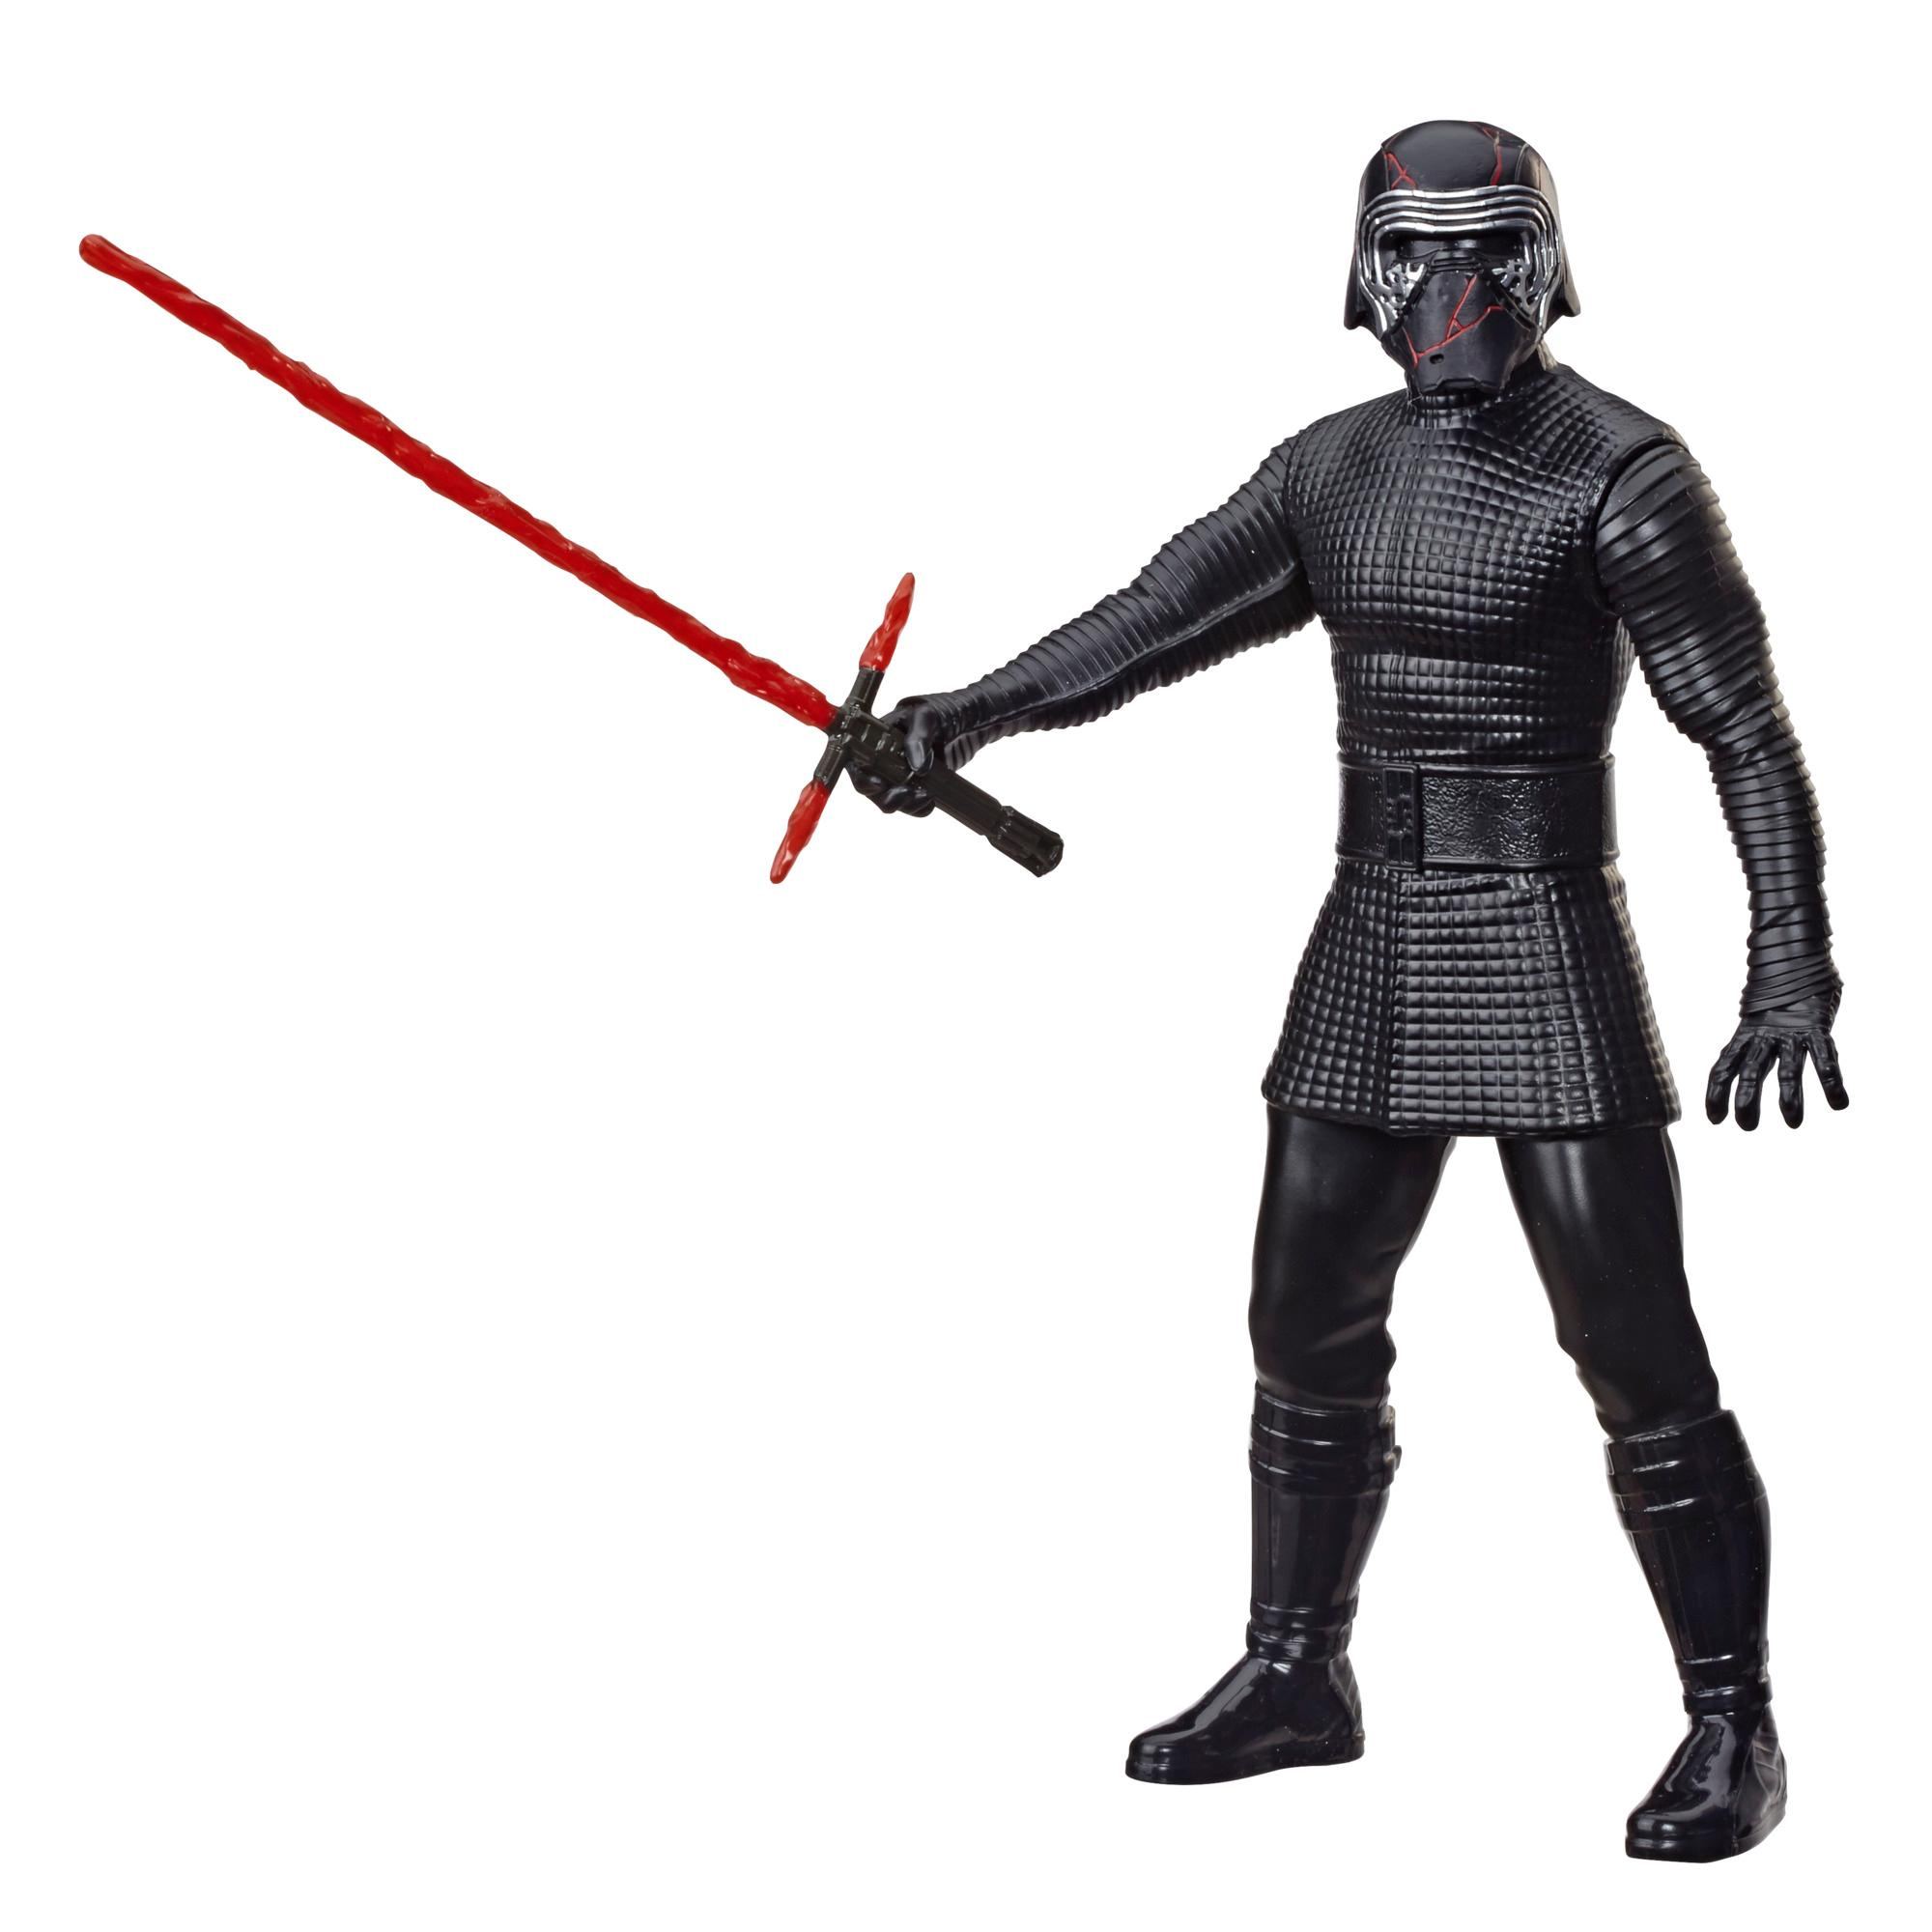 Star Wars Supreme Leader Kylo Ren Toy 9.5-inch Scale Star Wars: The Rise of Skywalker Figure, for Kids Ages 4 and Up